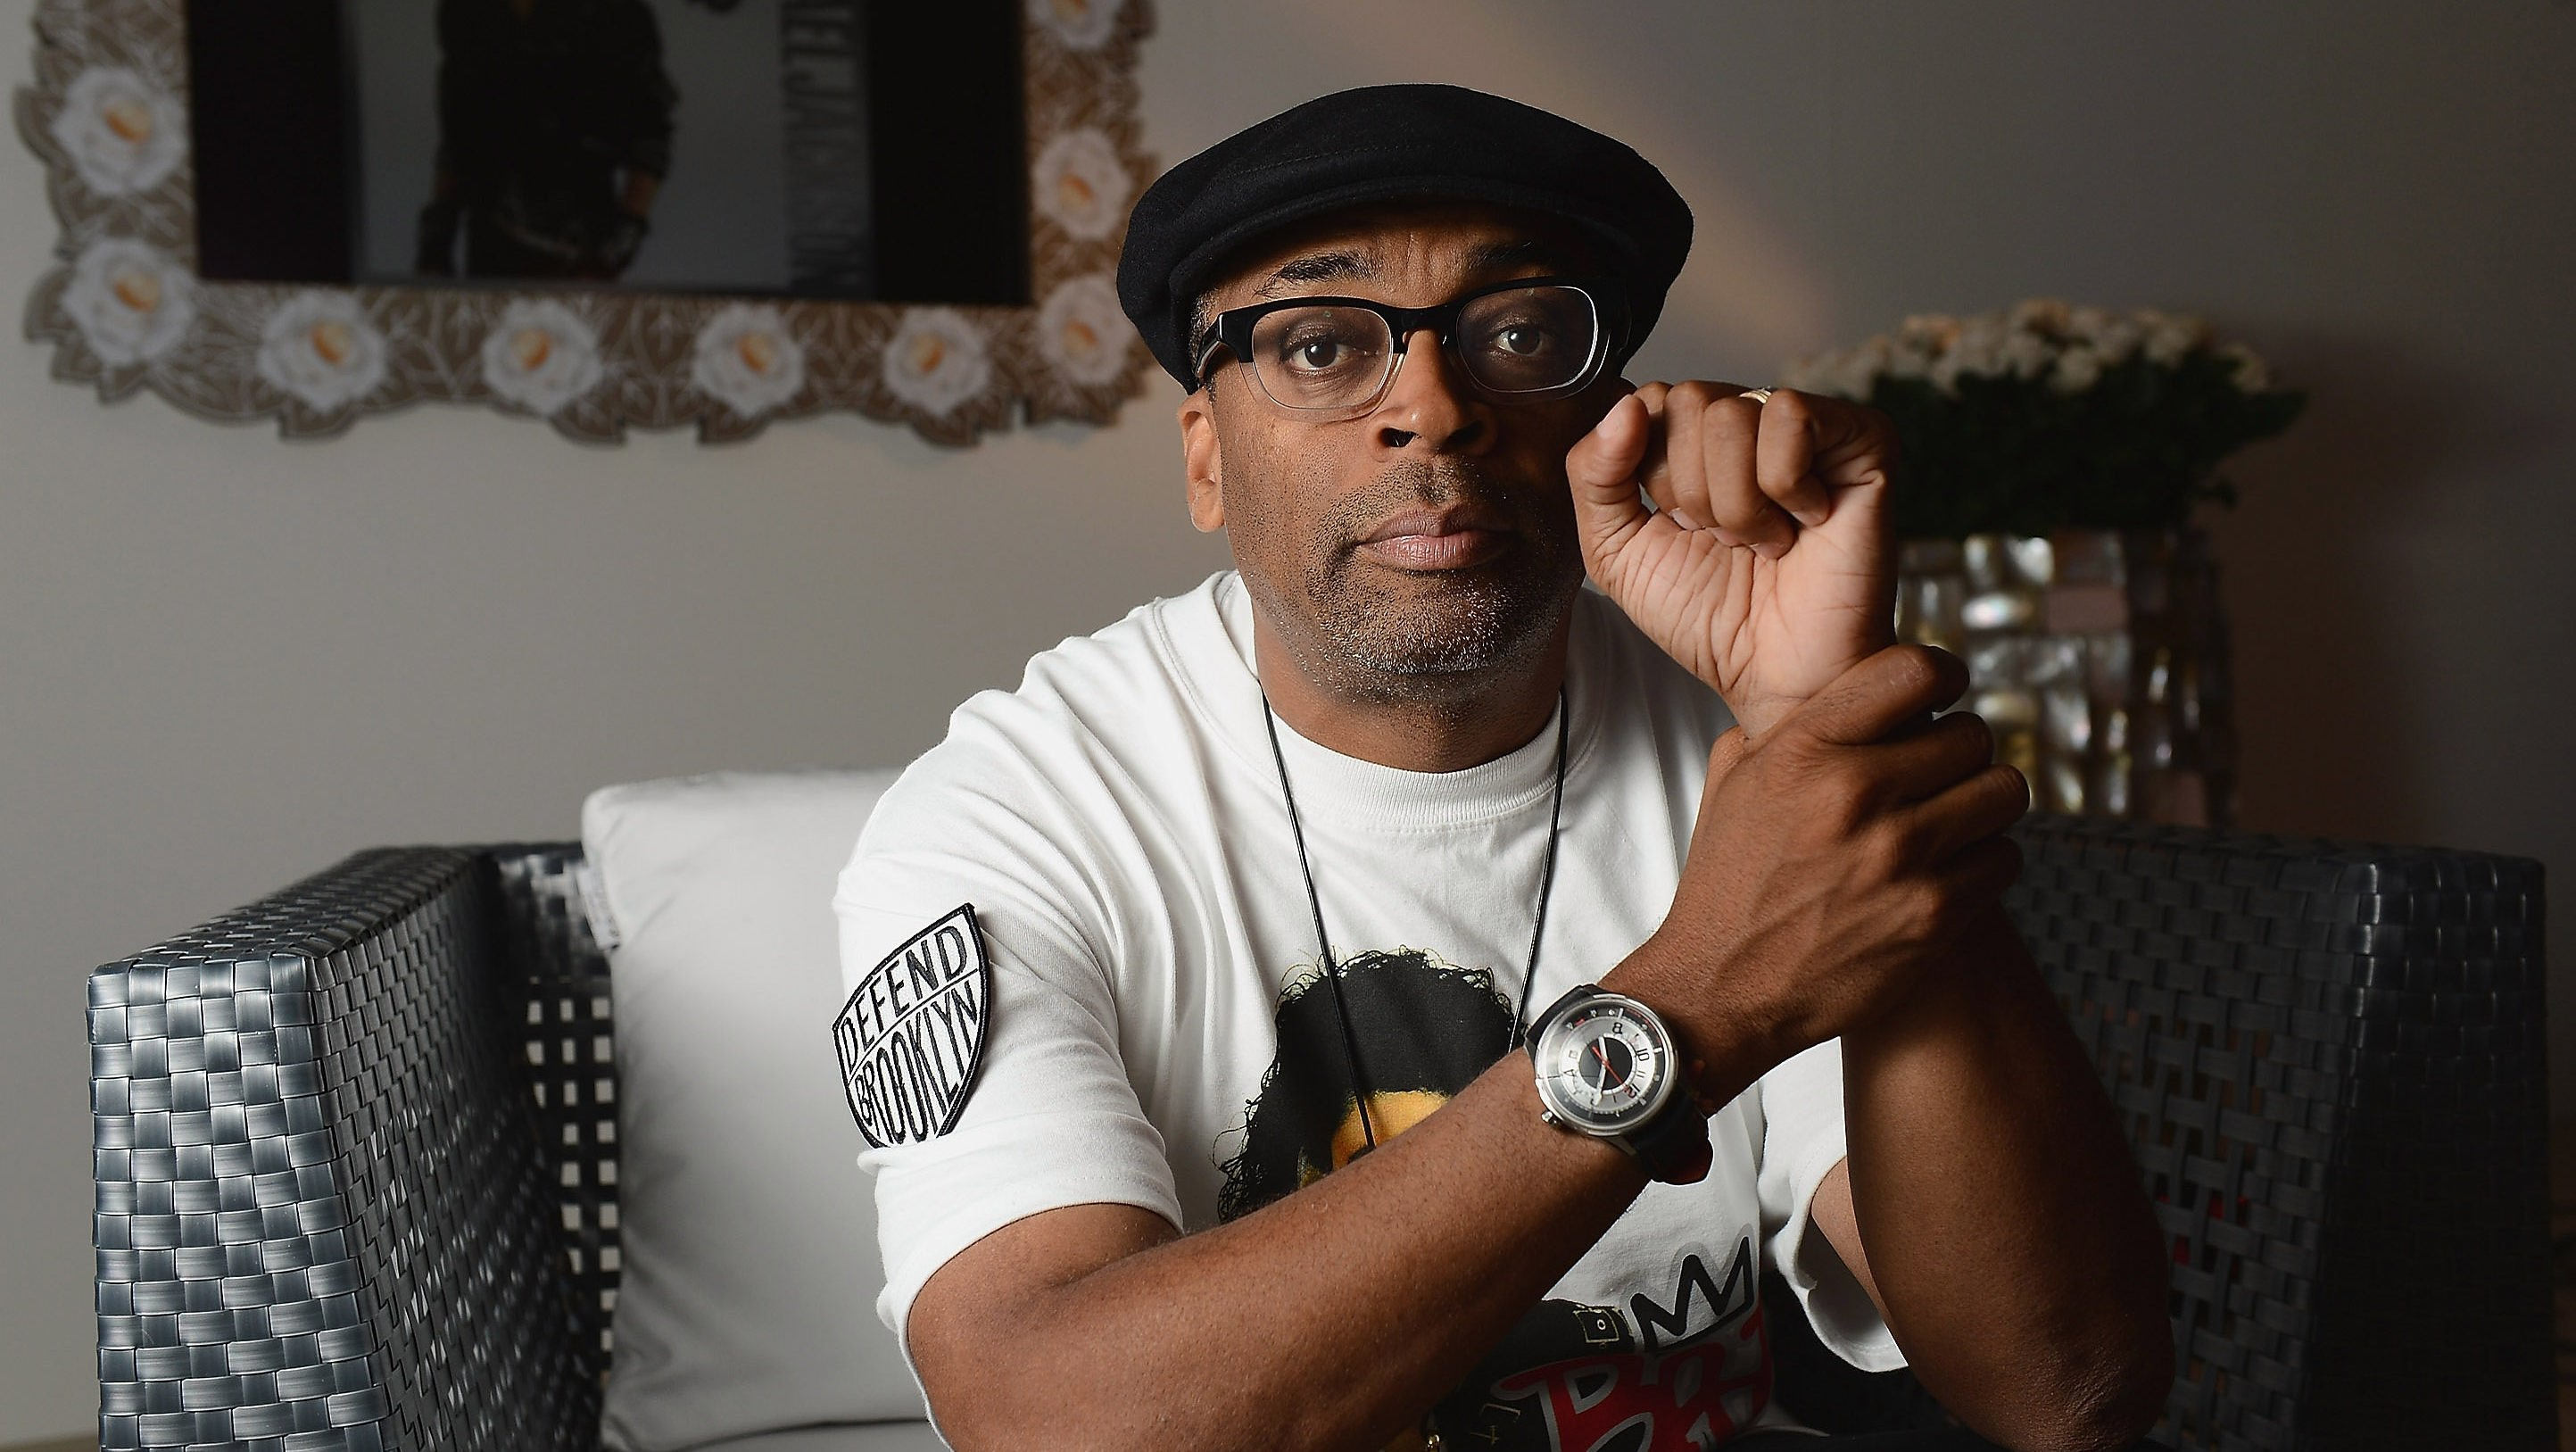 Spike Lee blasts Trump for not condemning the Klan and Alt-Right